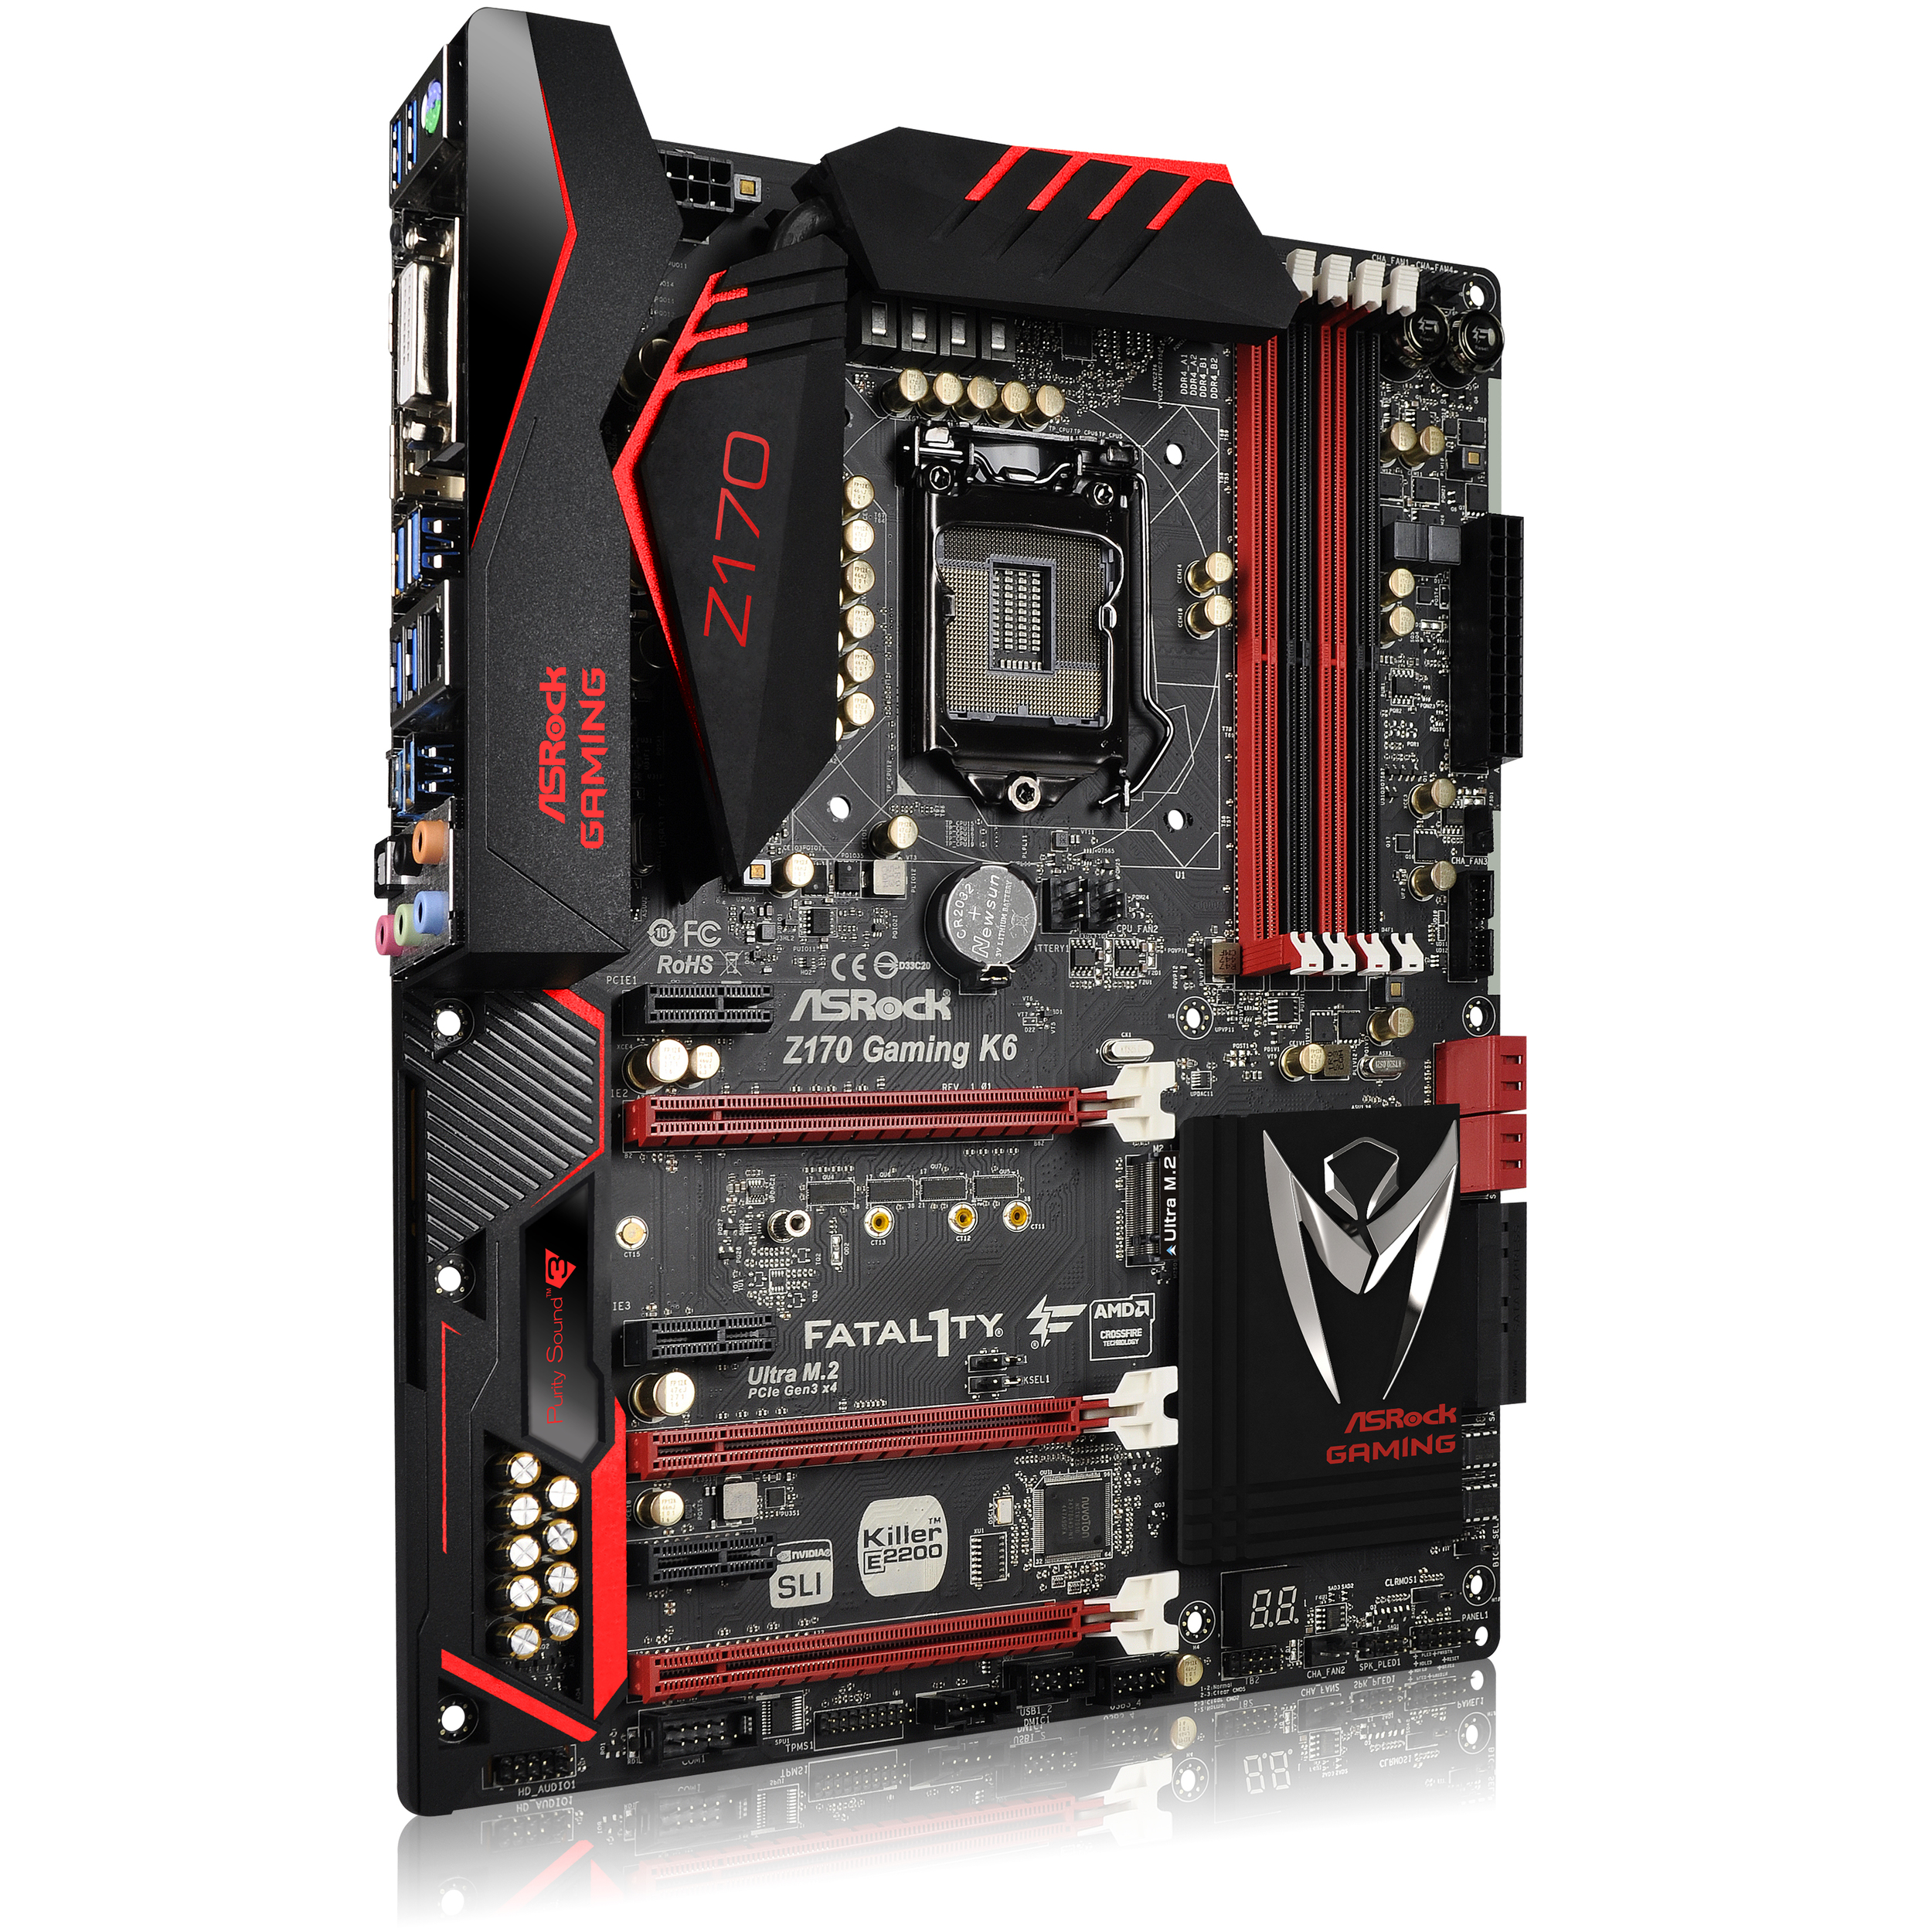 Here's you're typical Z170 motherboard,this shit is badass.